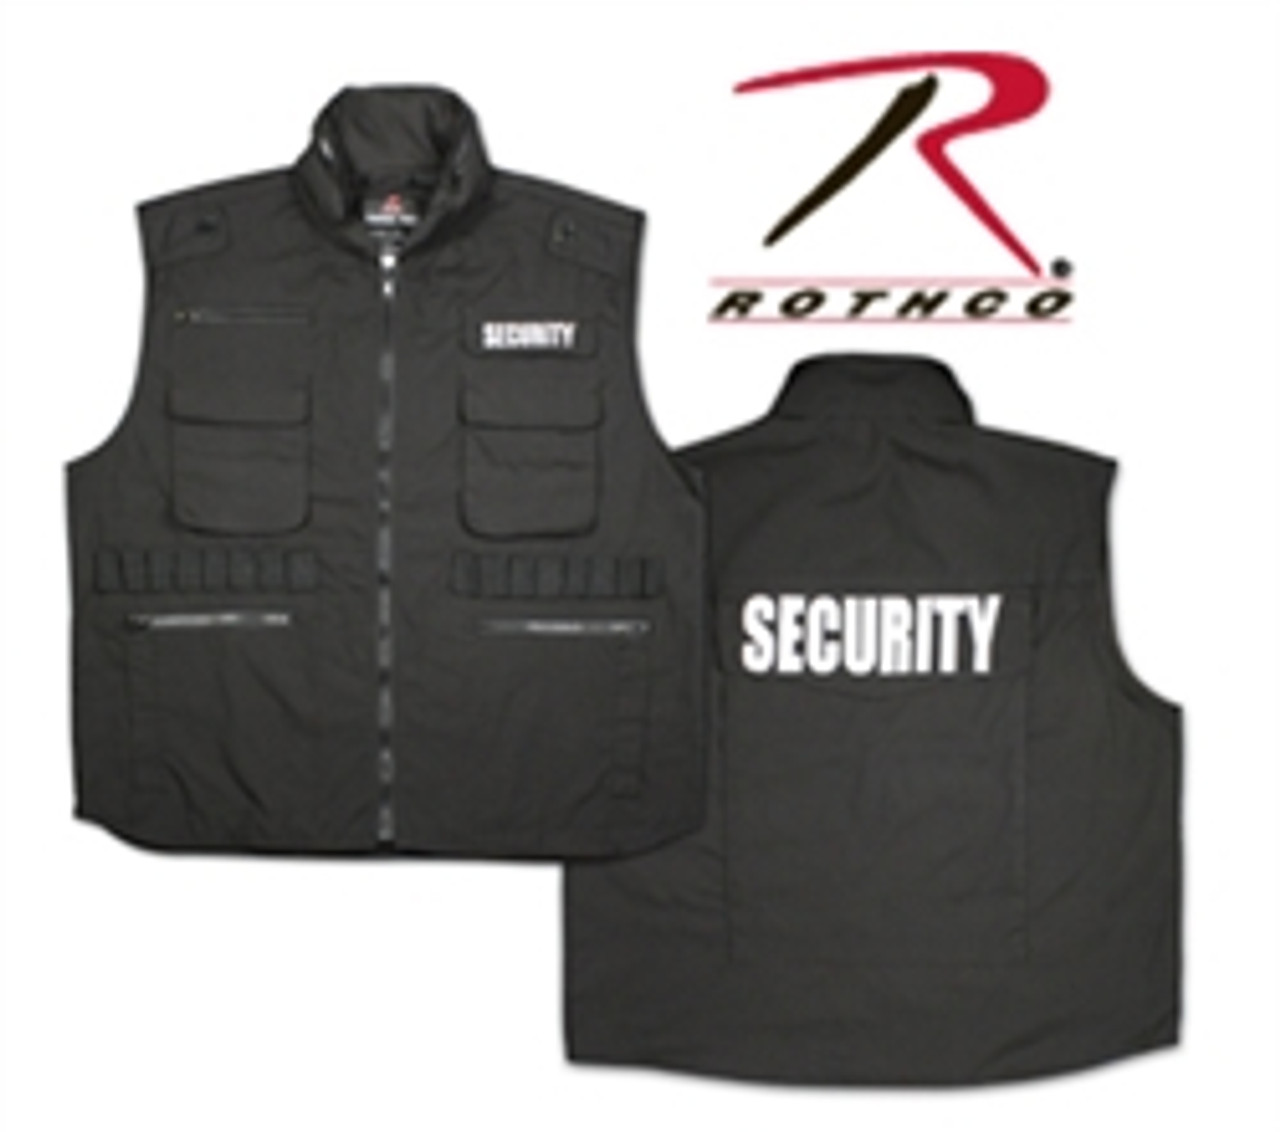 Security Embroidered Items Jacket,Fleece,Polo,Package